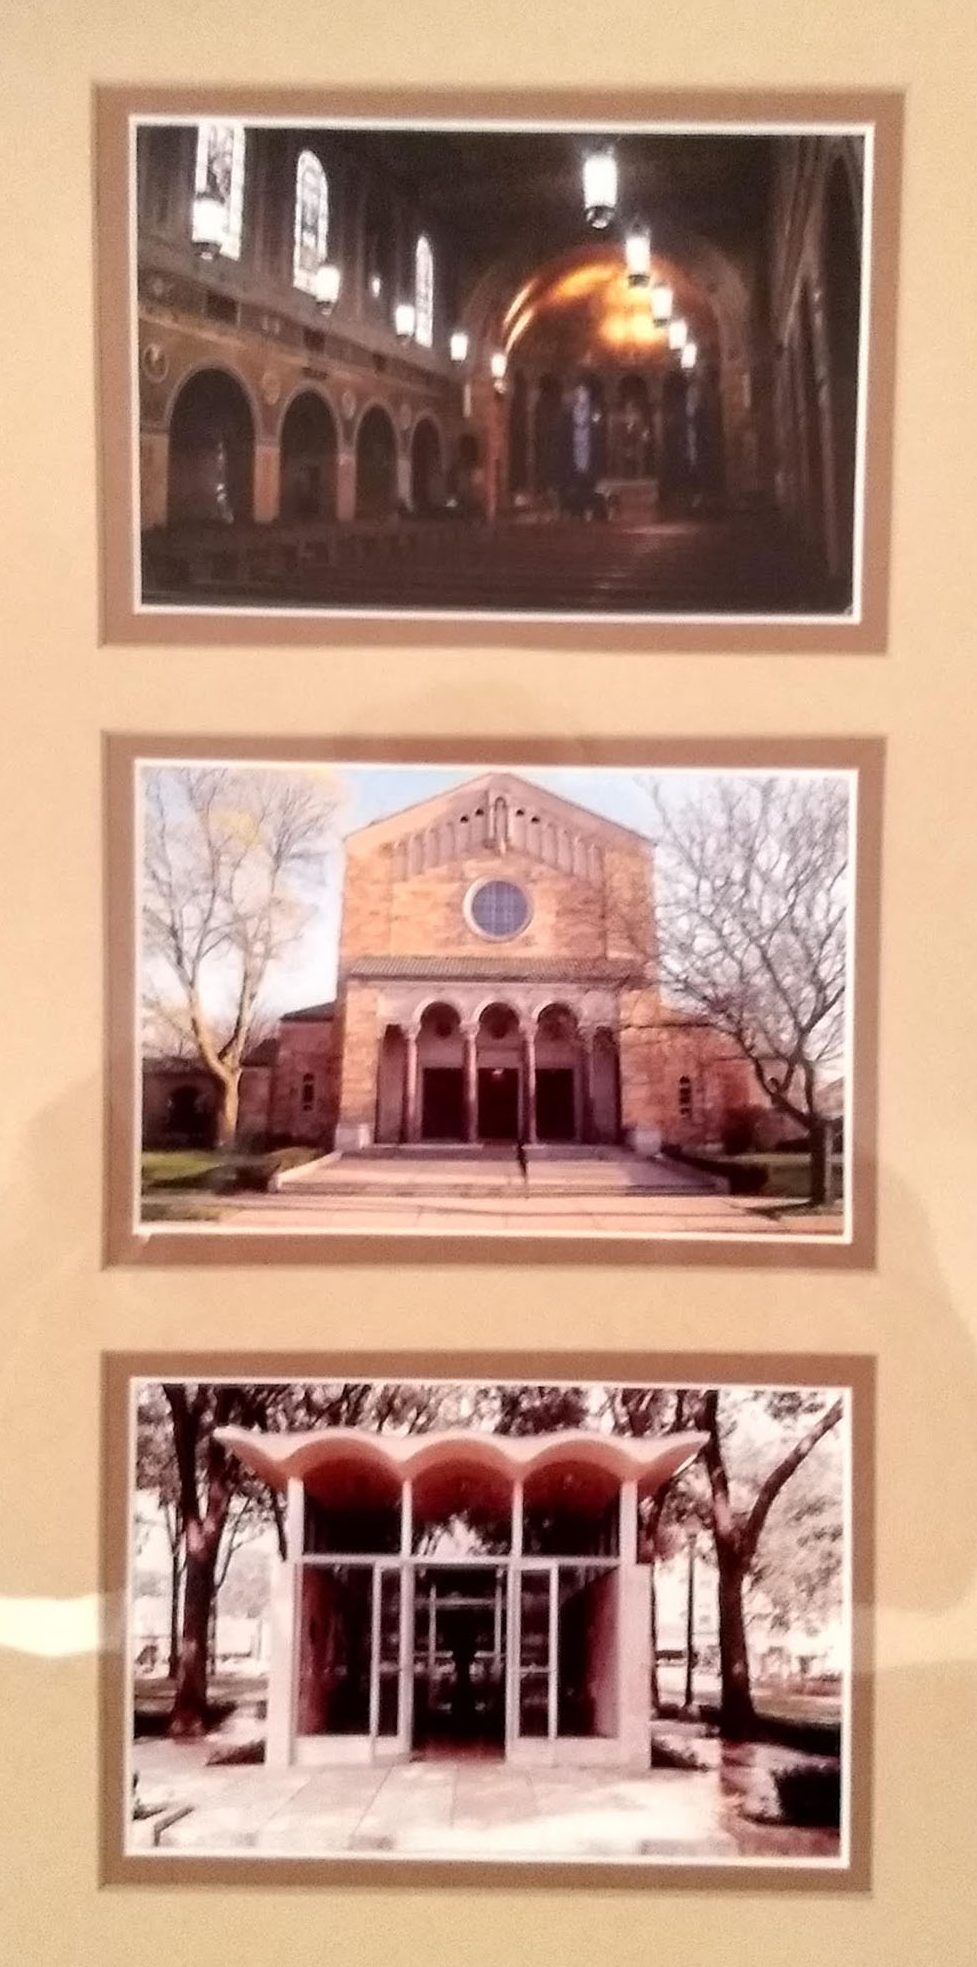 The bottom photo is Our Lady of Lourdes Chapel on Detroit Mercy's McNichols Campus, where Jim and Ruth Strand were engaged. The other two photos are of Precious Blood, where they were married 52 years ago.